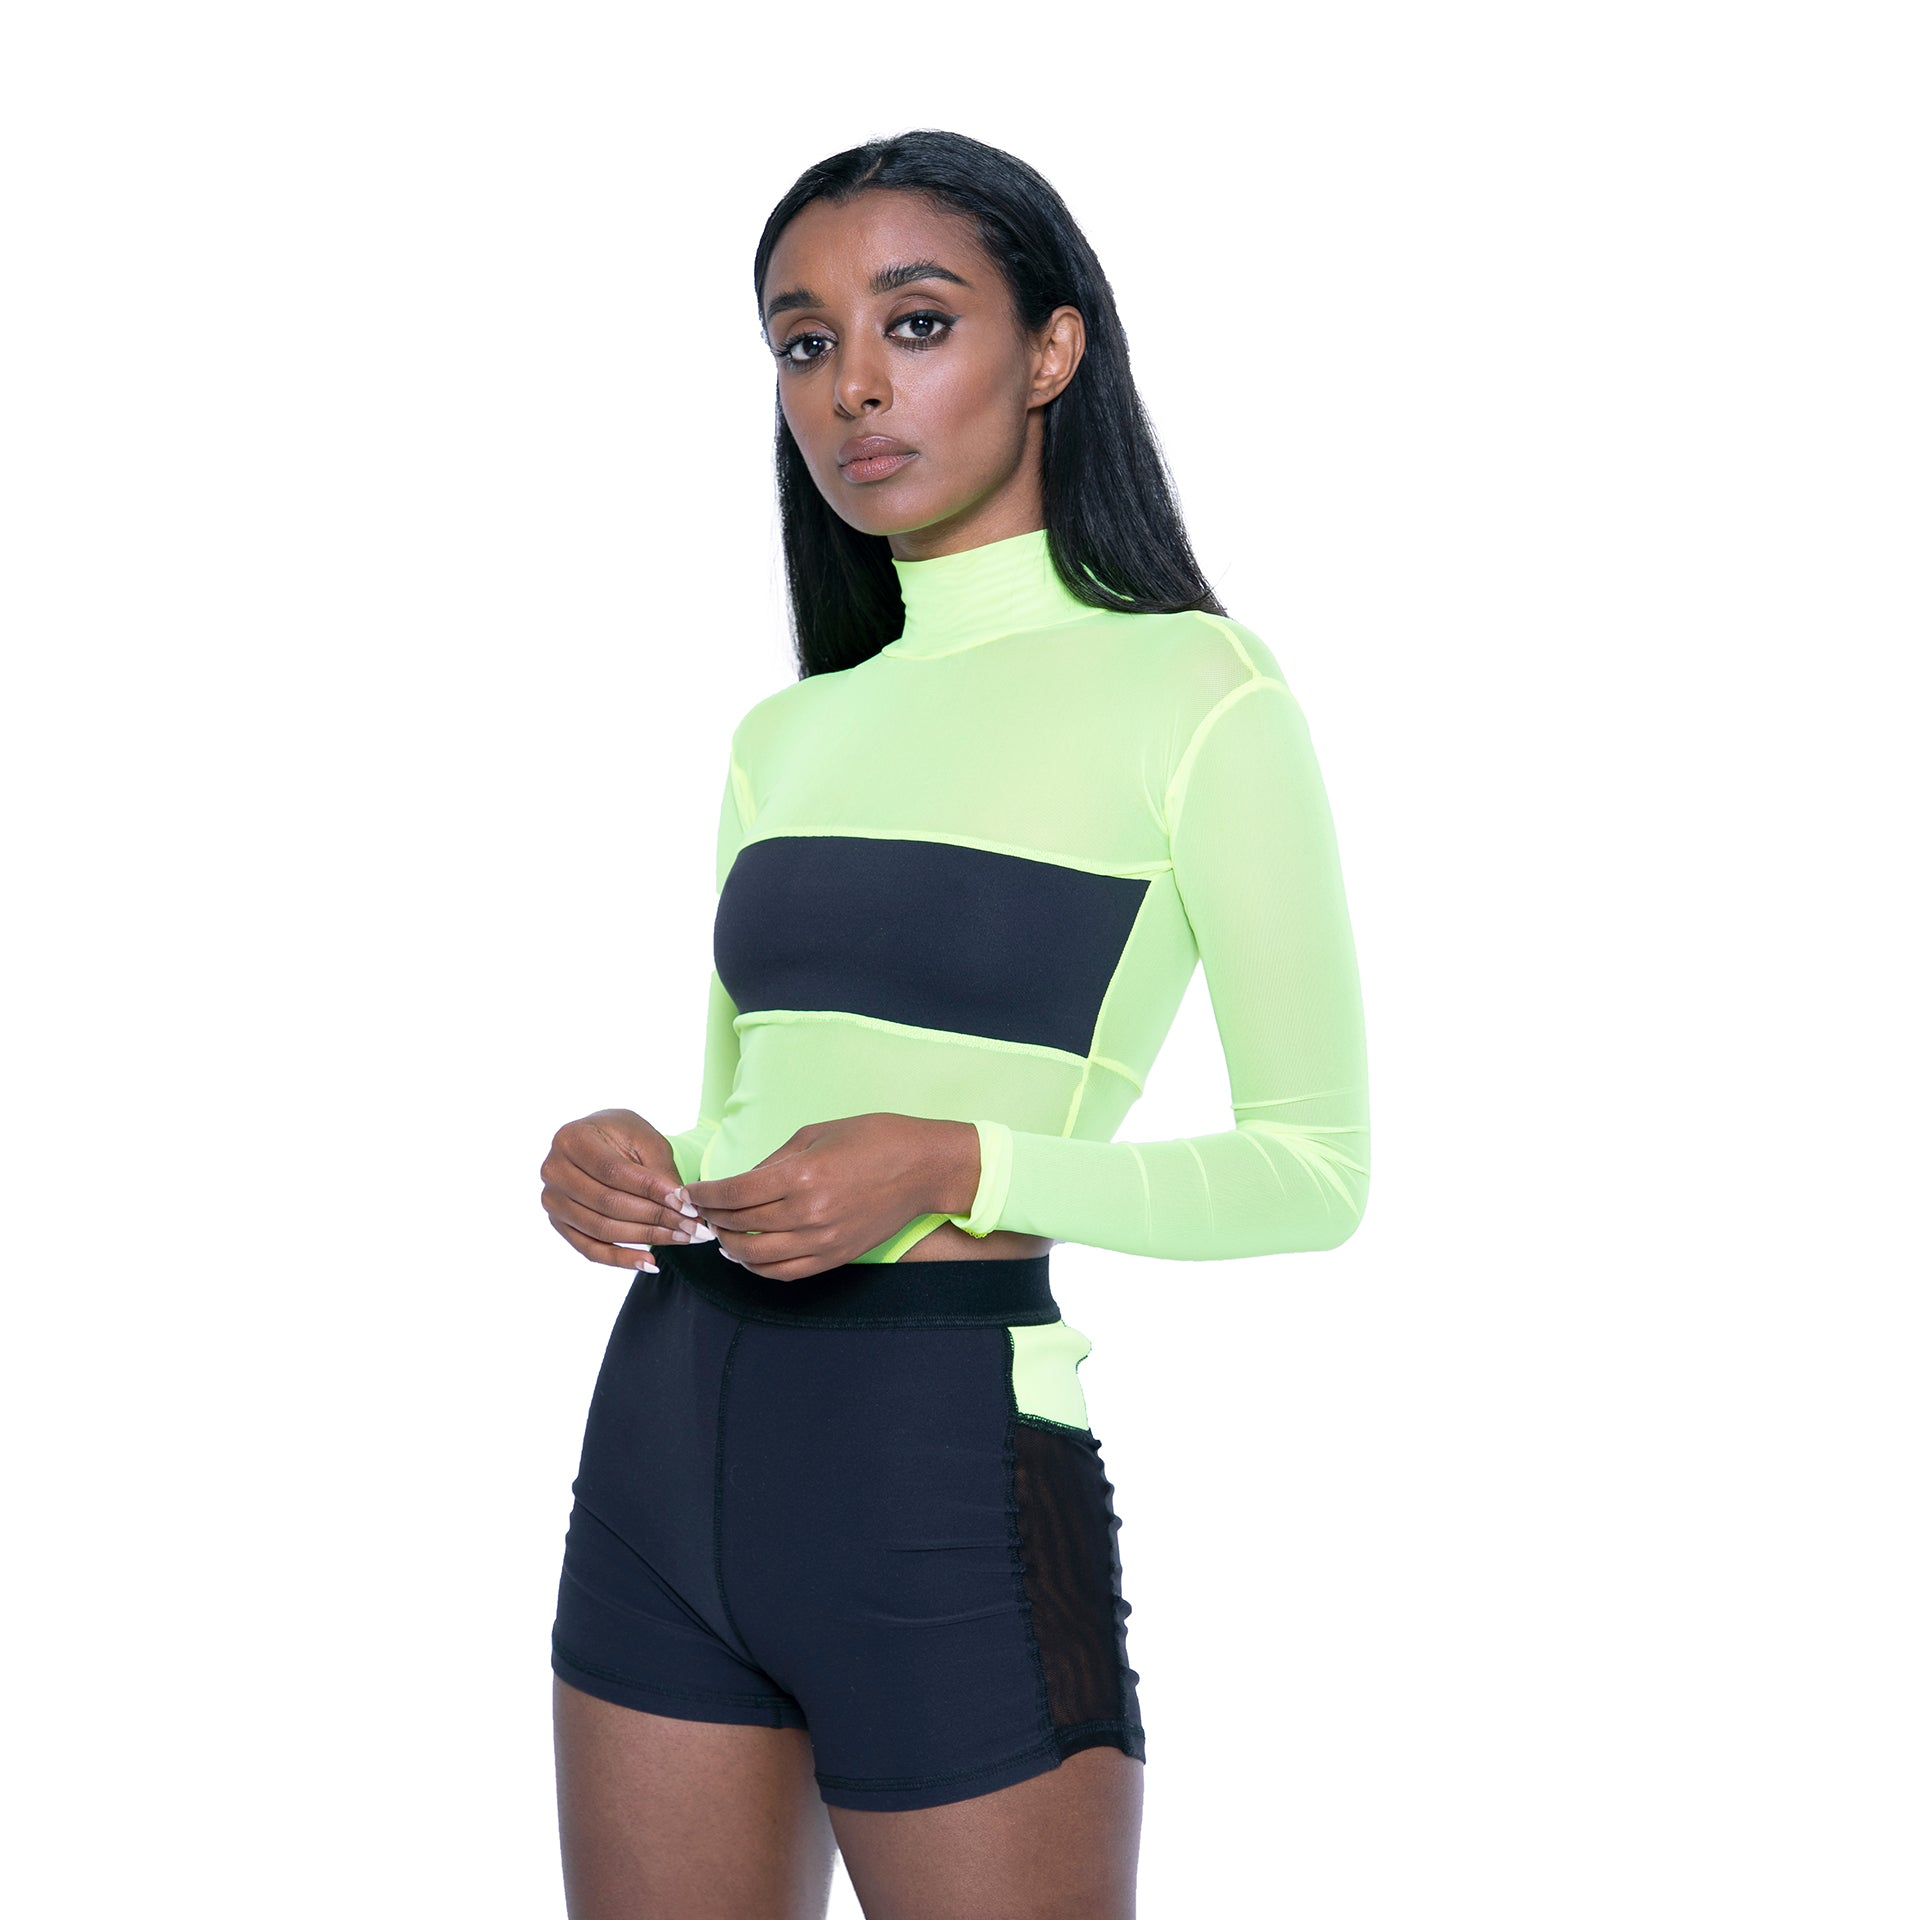 Go Getter - High Waist Sheer Body Suit (Active Wear)